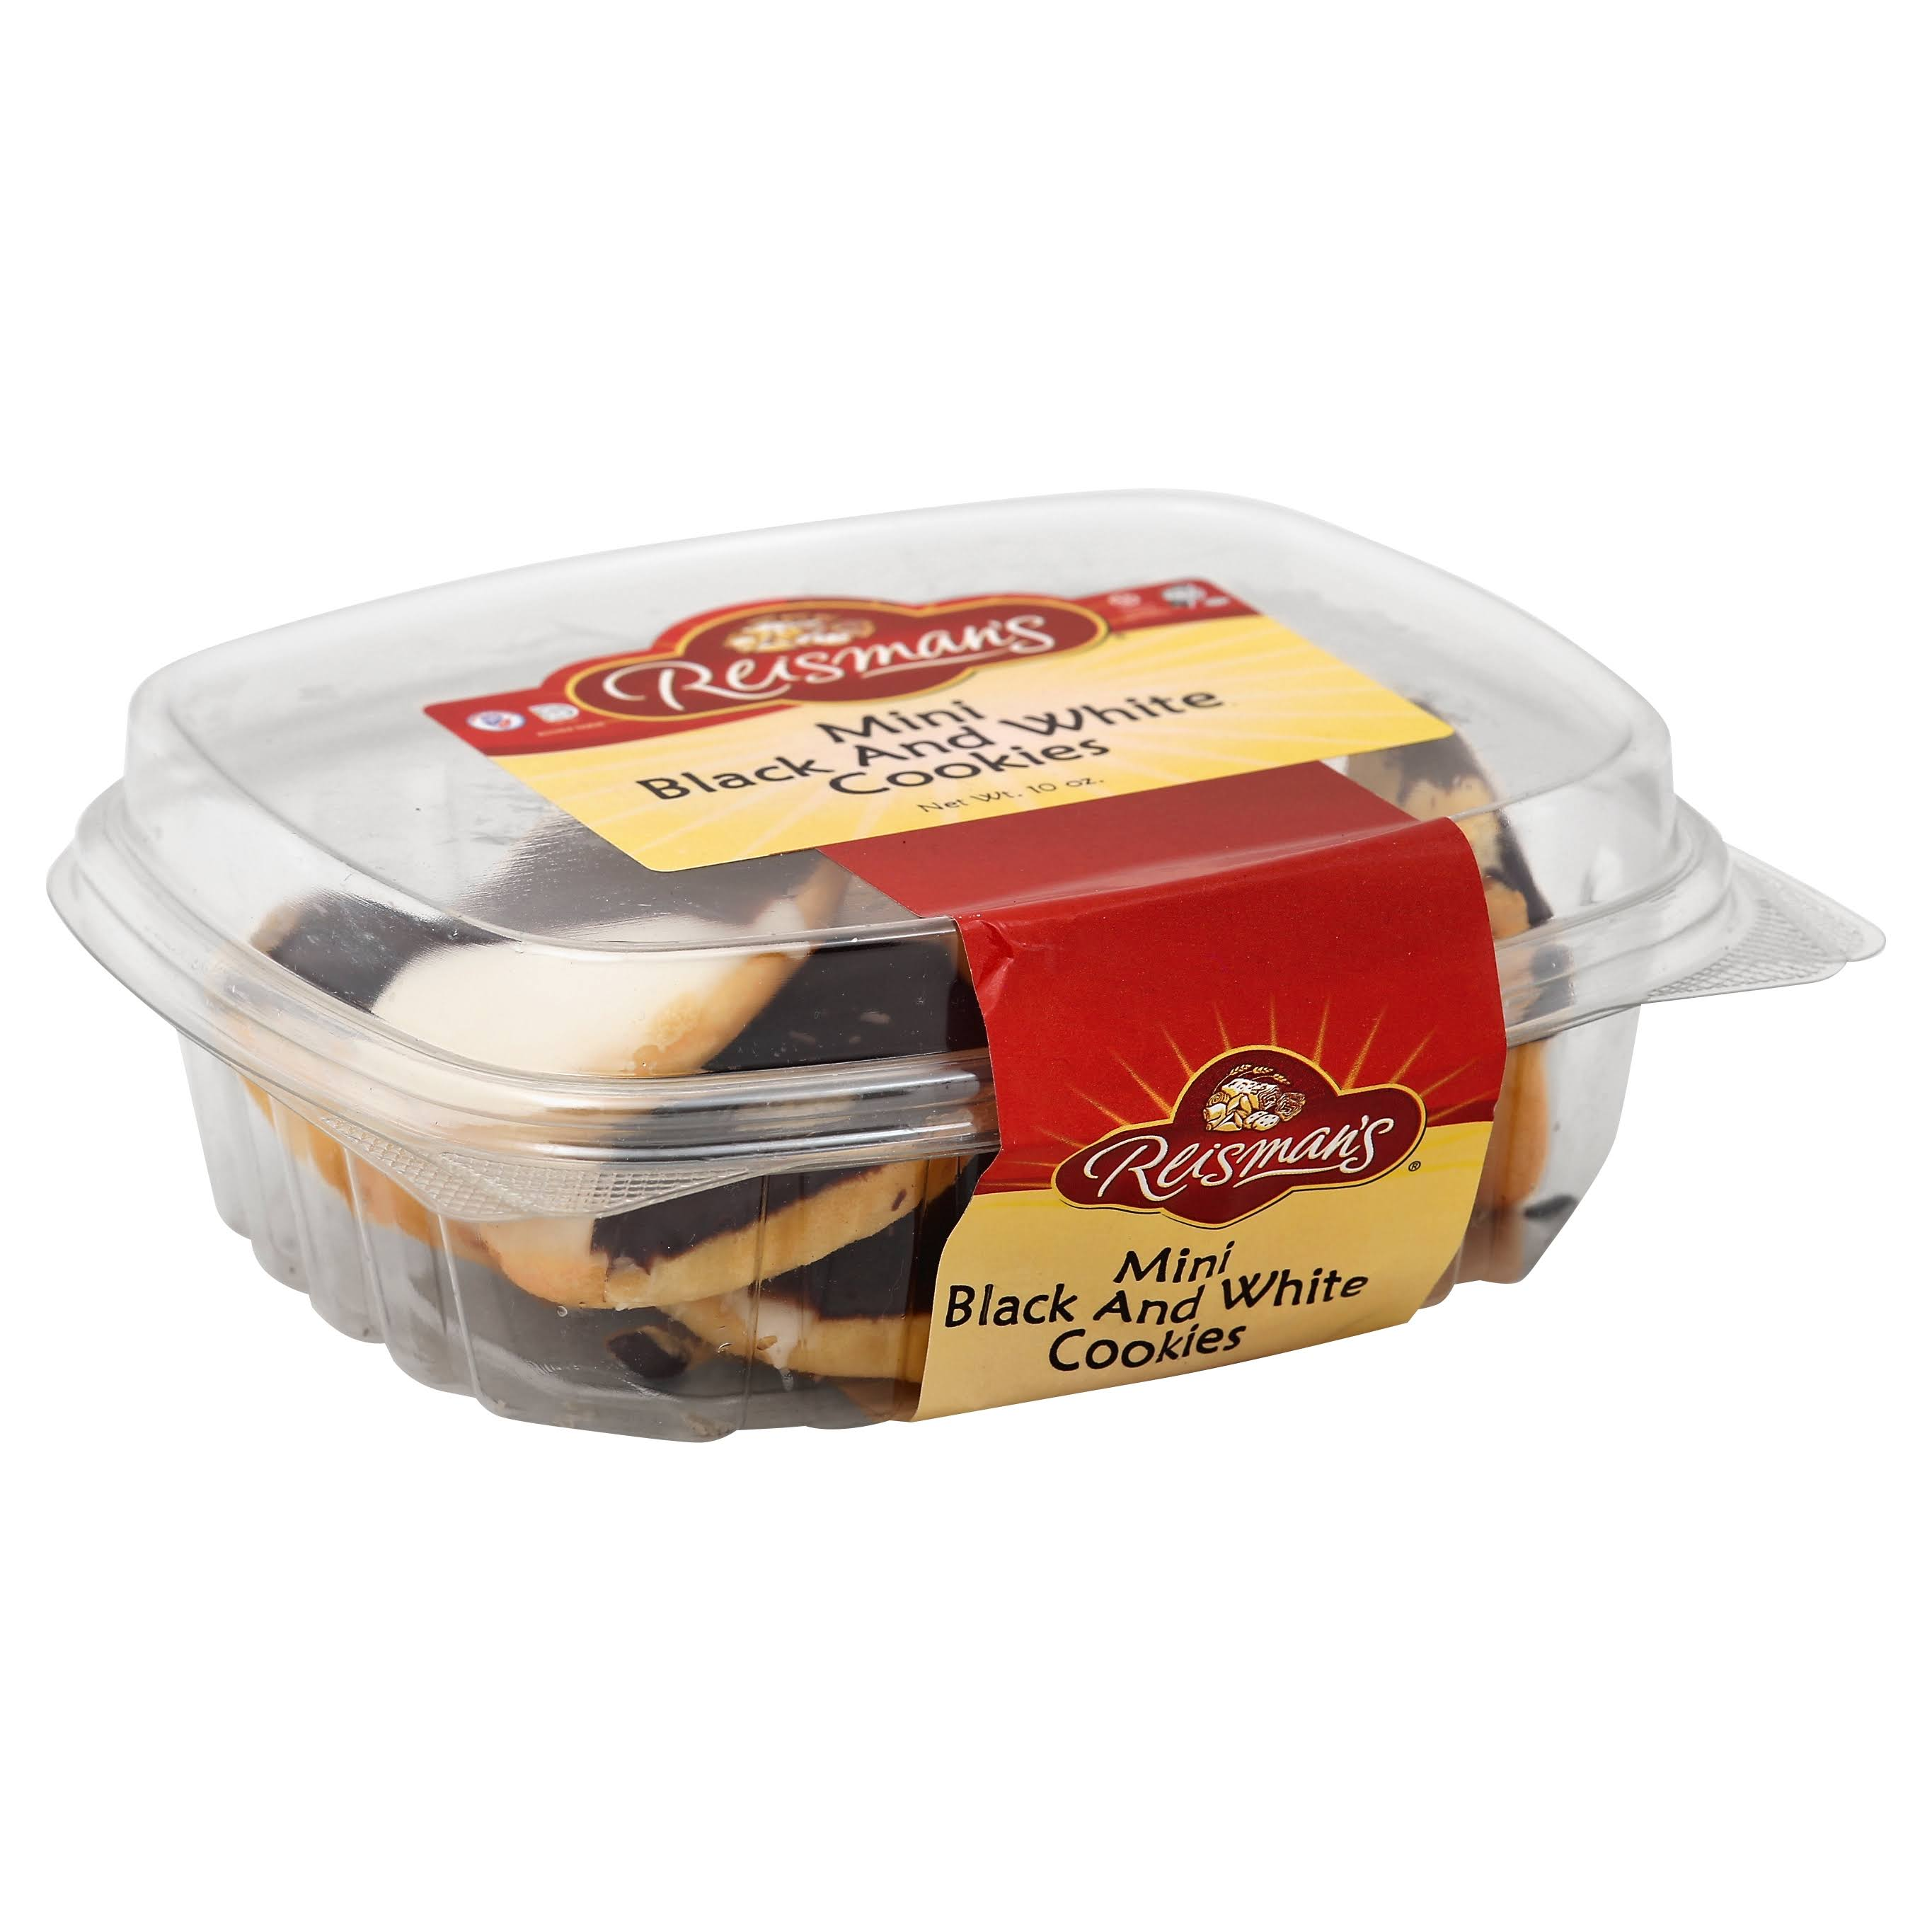 Reismans Brothers Bakery Mini Black and White Cookies - 10oz